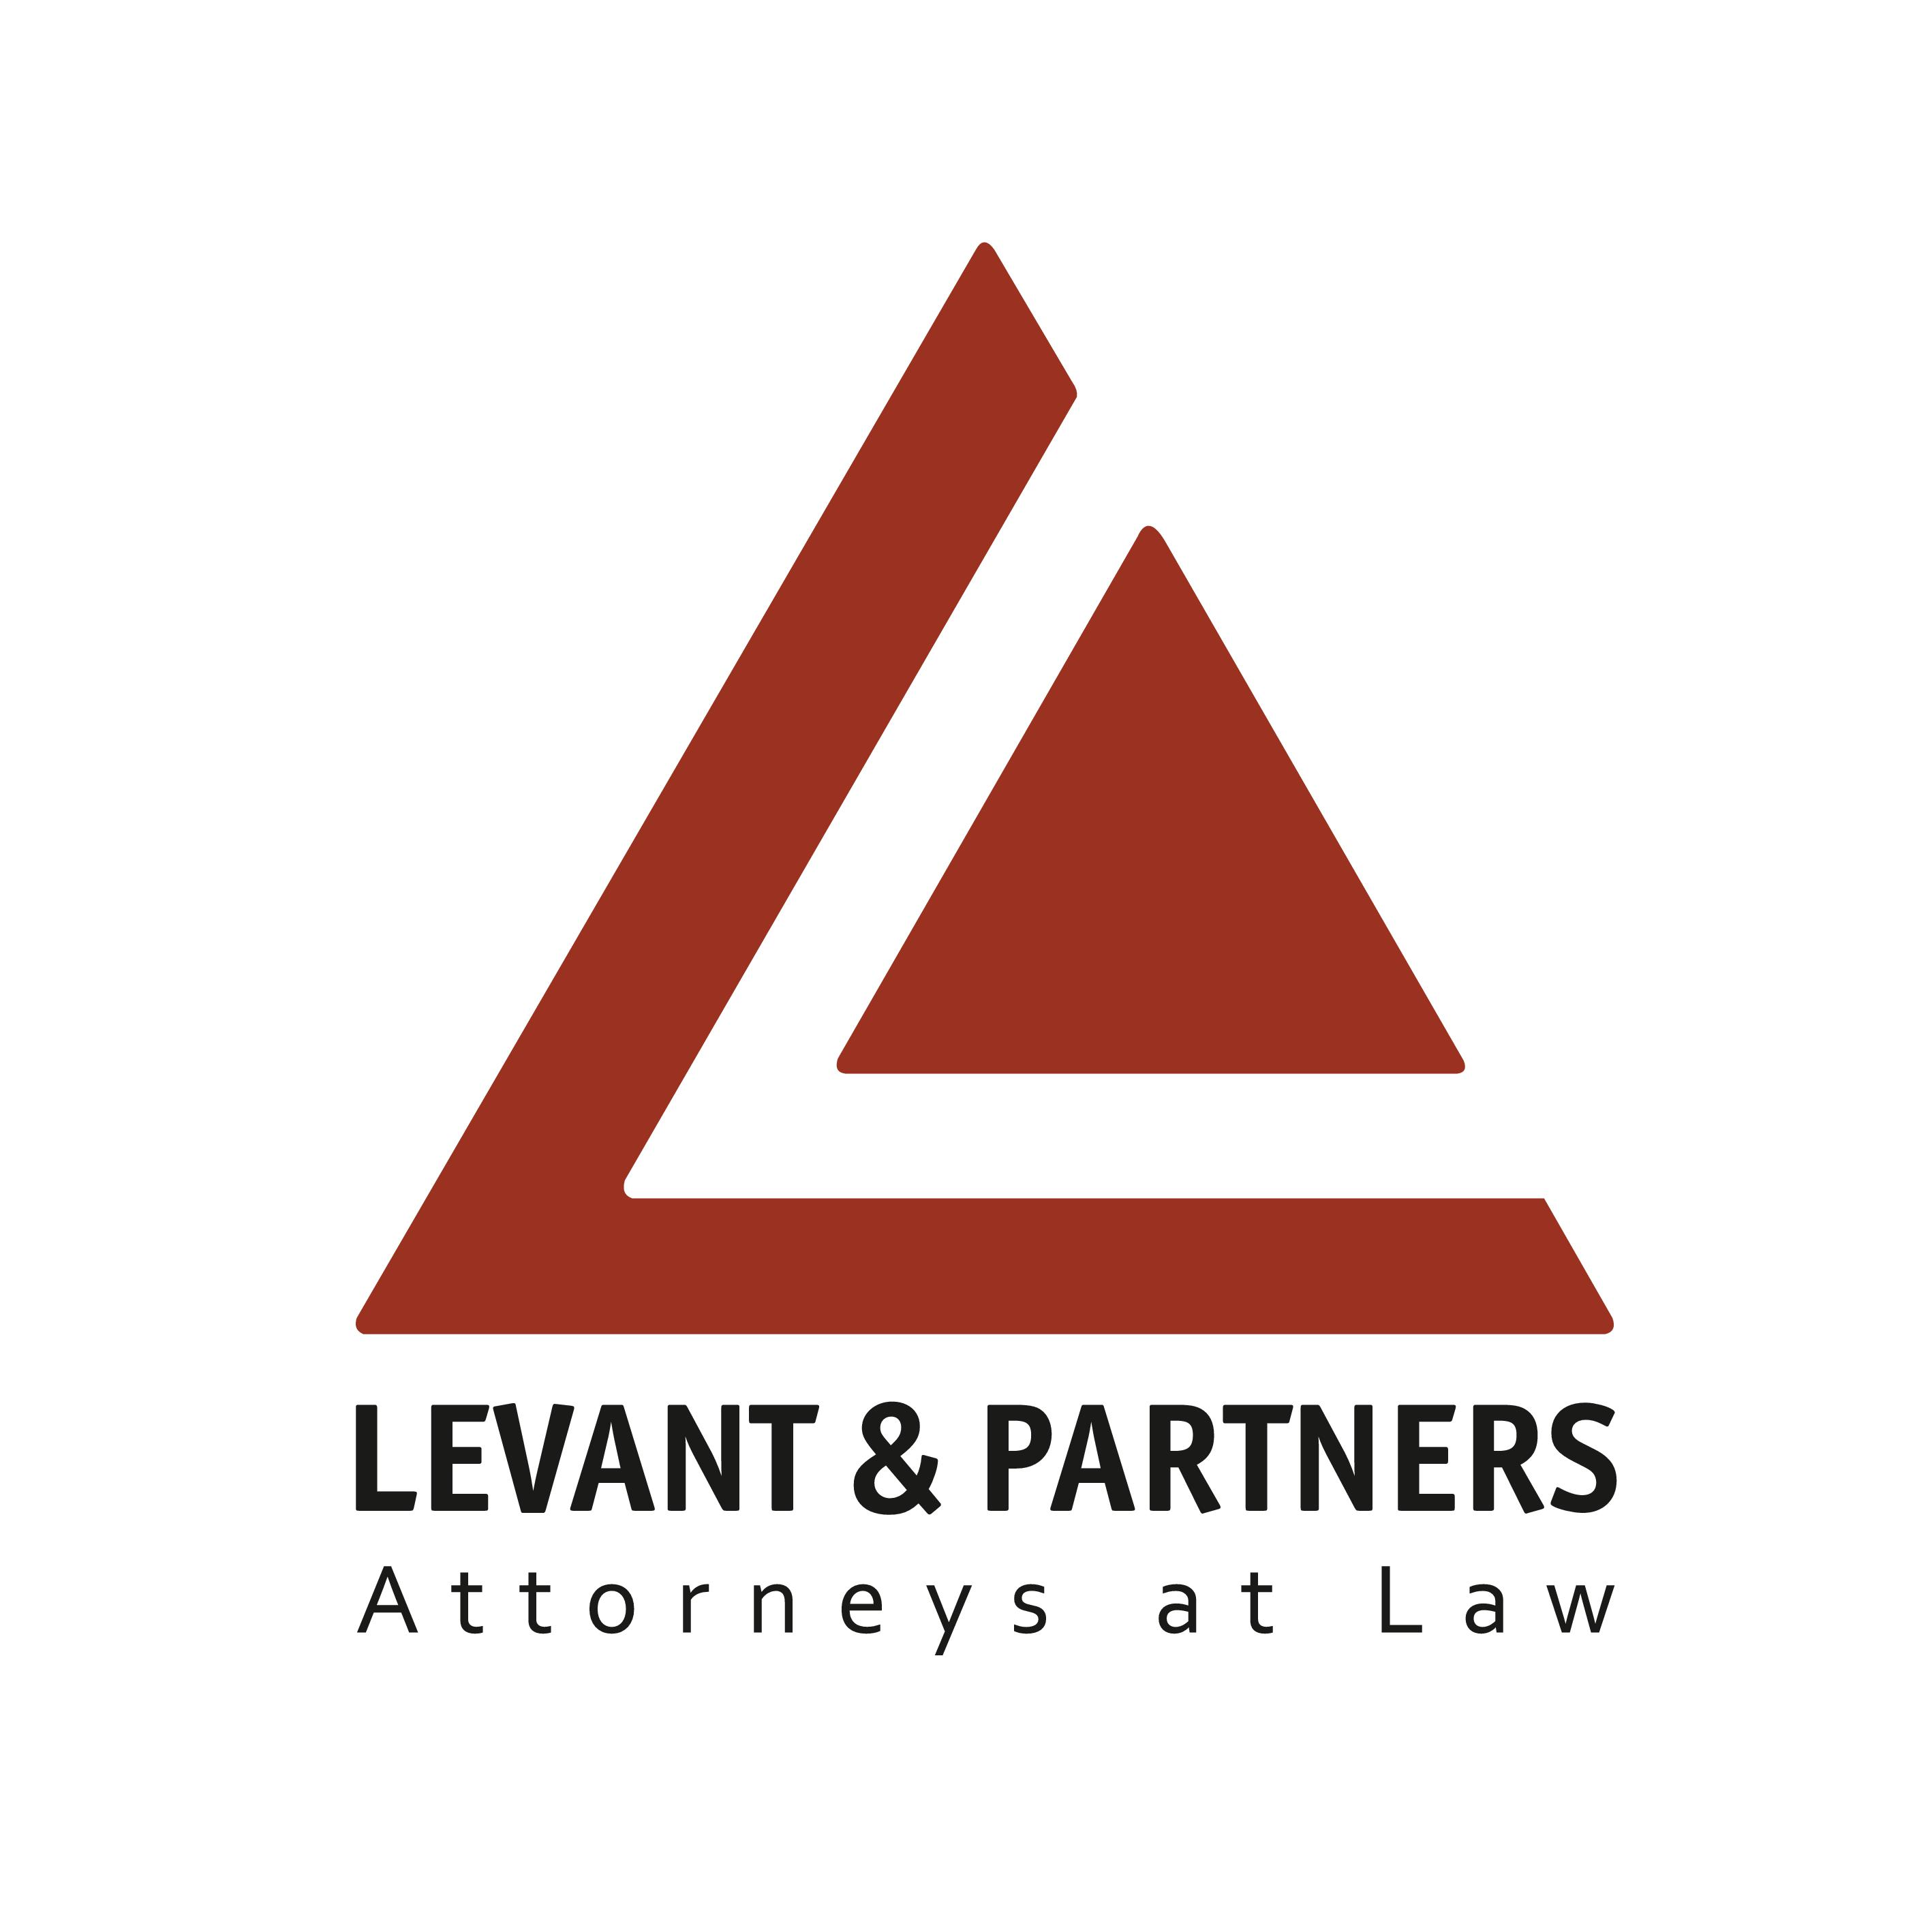 Levant & Partners Law Firm